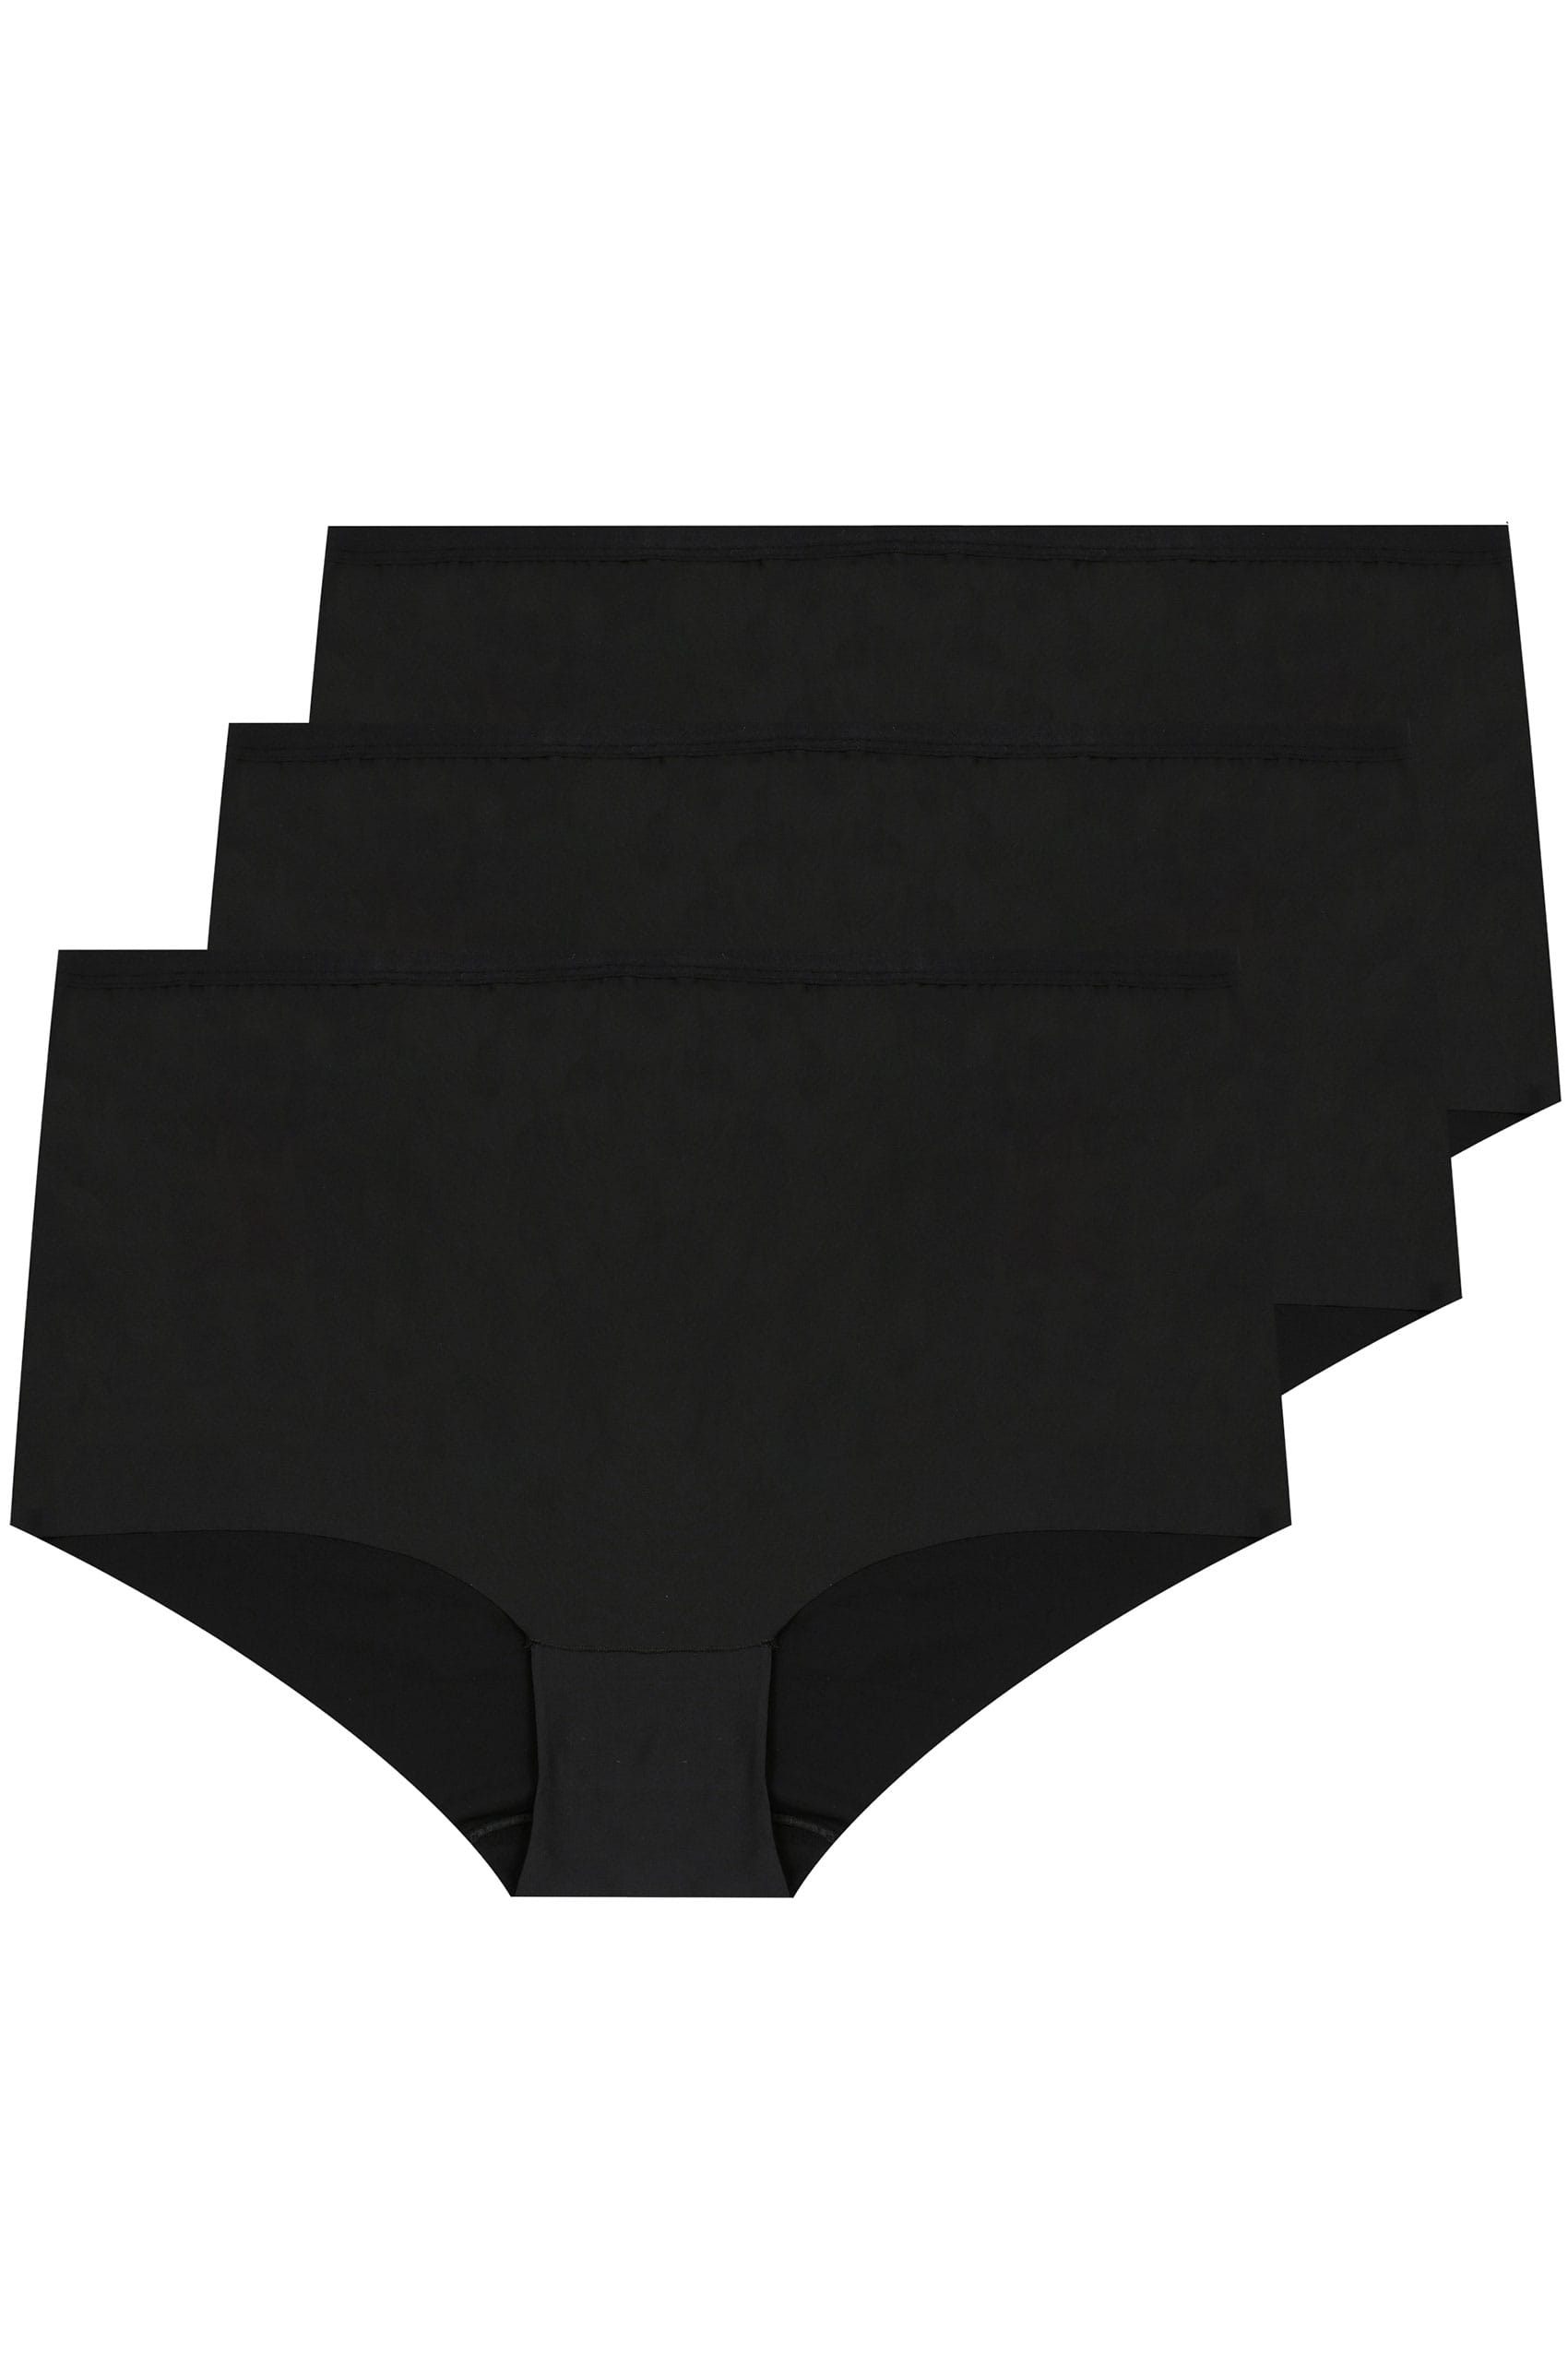 3 pack black no vpl full briefs plus size 16 to 36 for Supermarket bag packing letter template